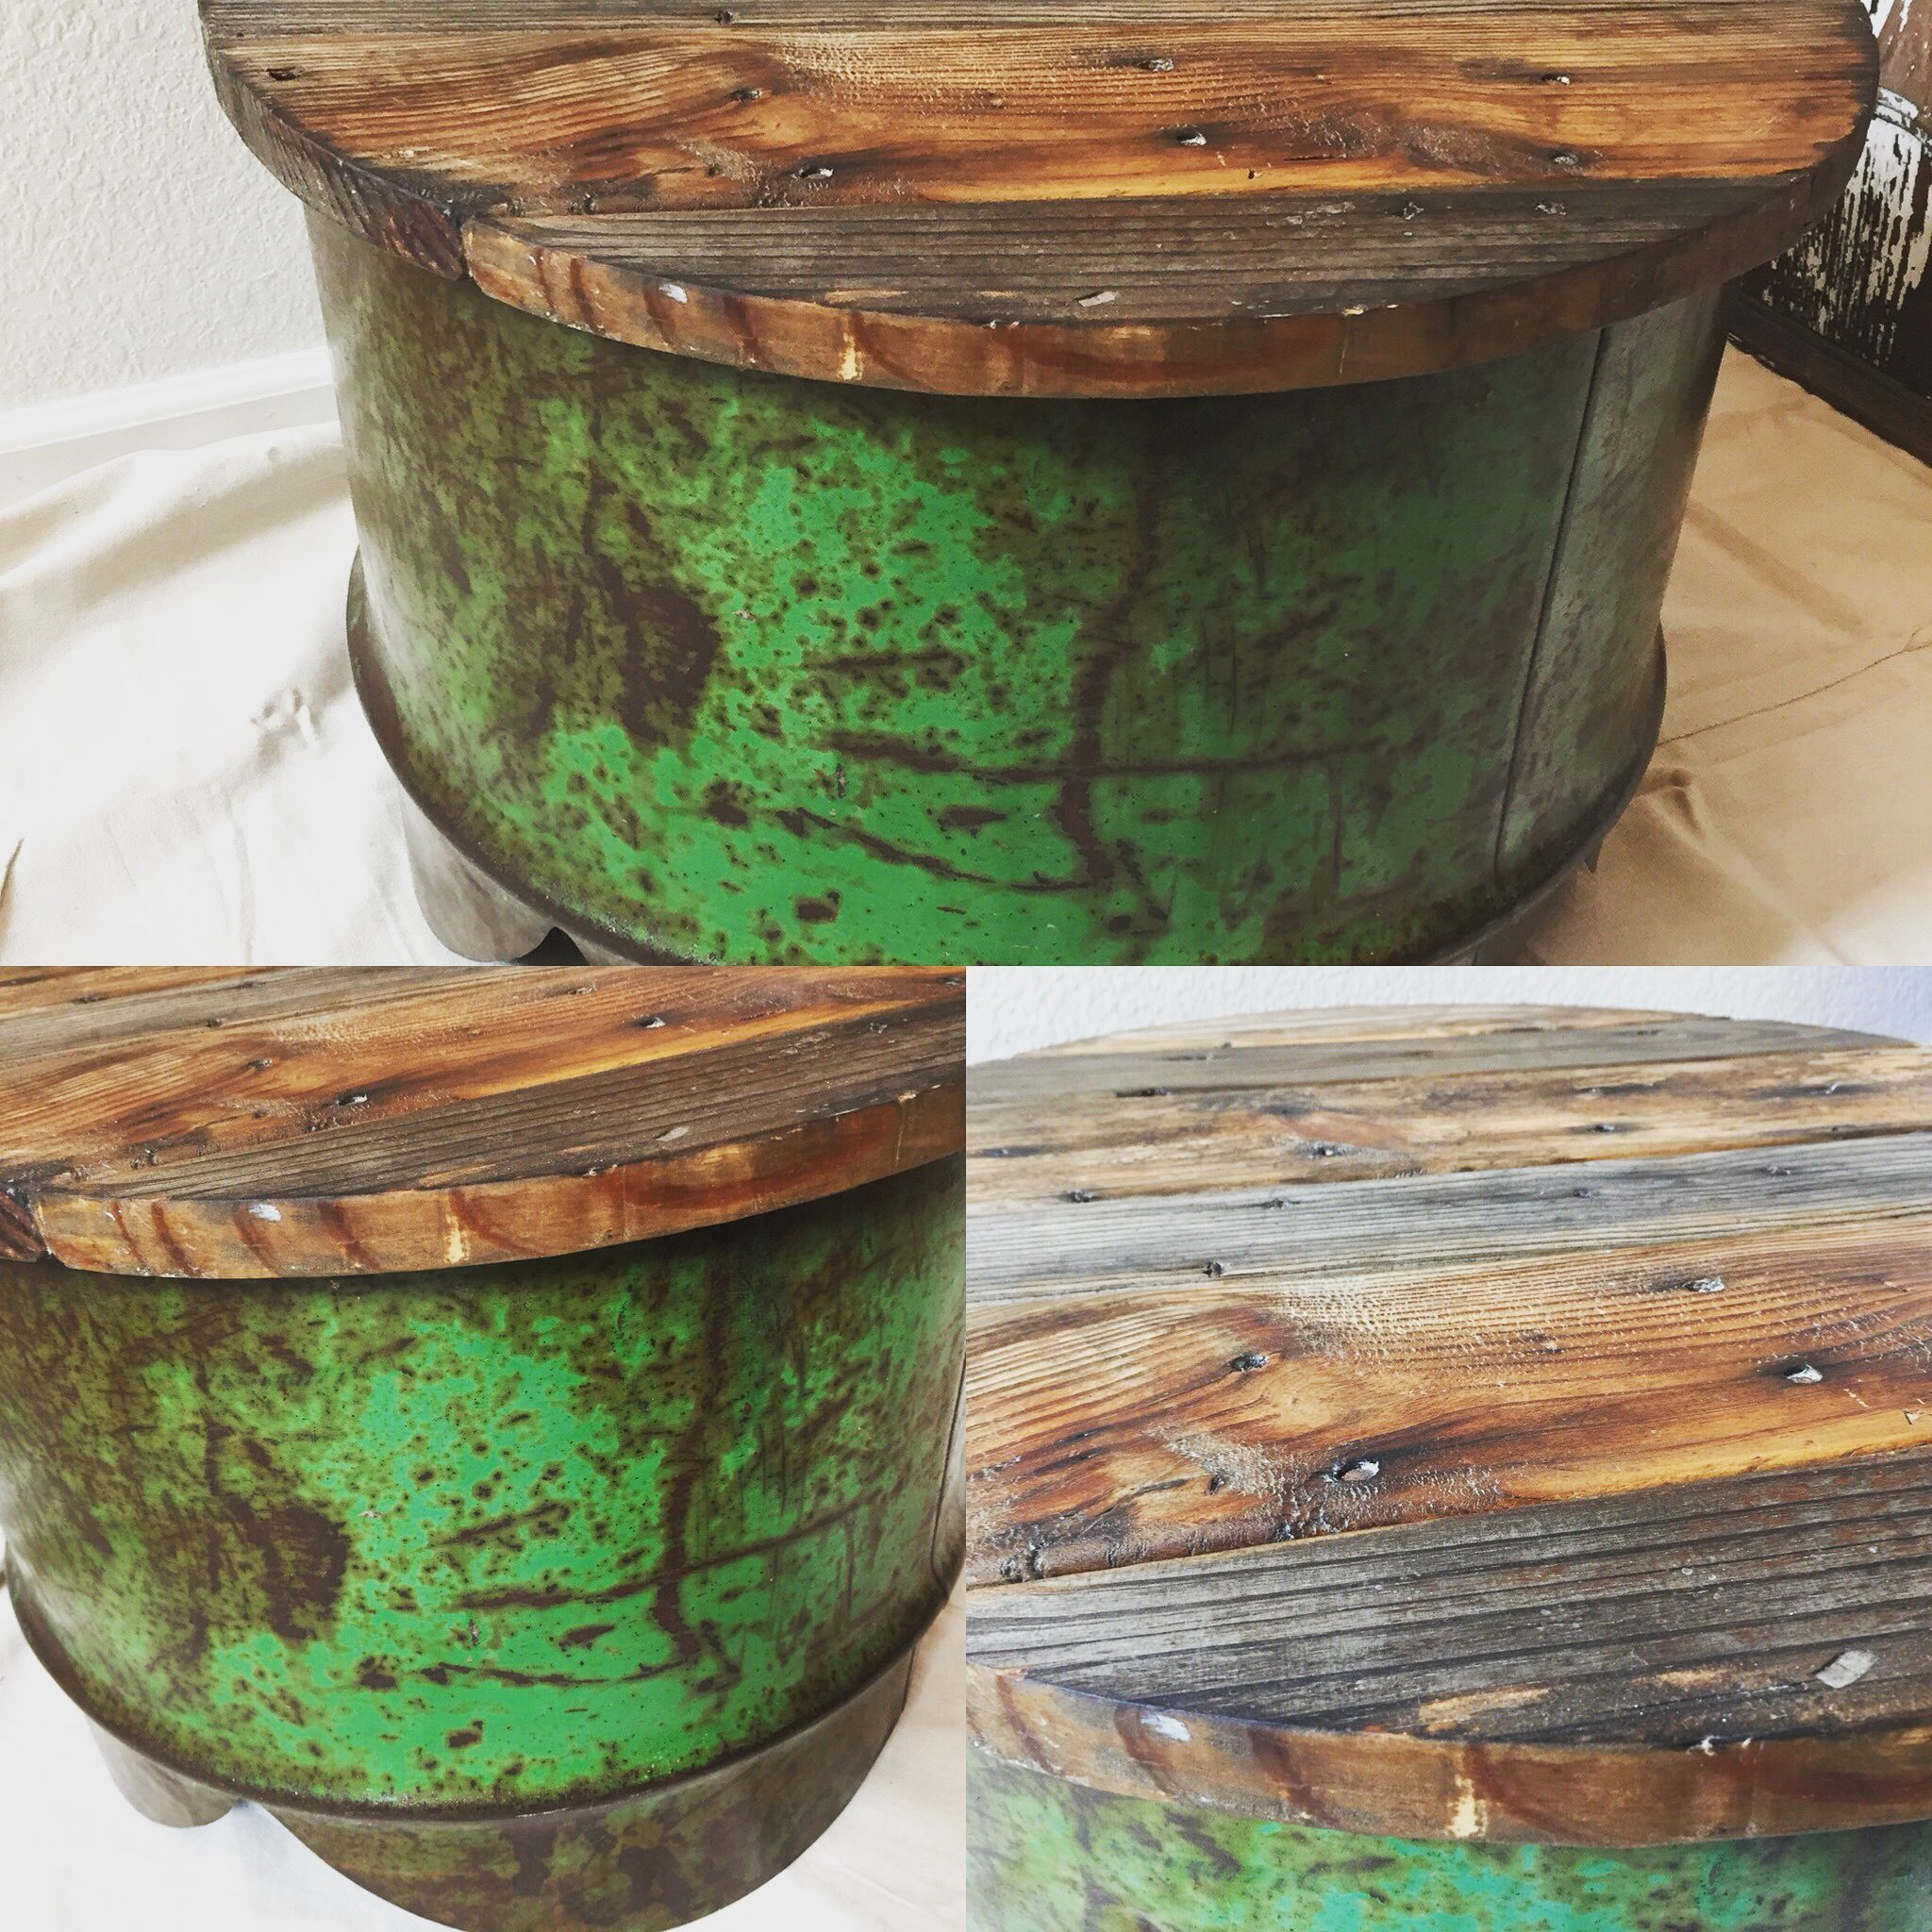 55 gallon steel drum coffee table end table with reclaimed wood